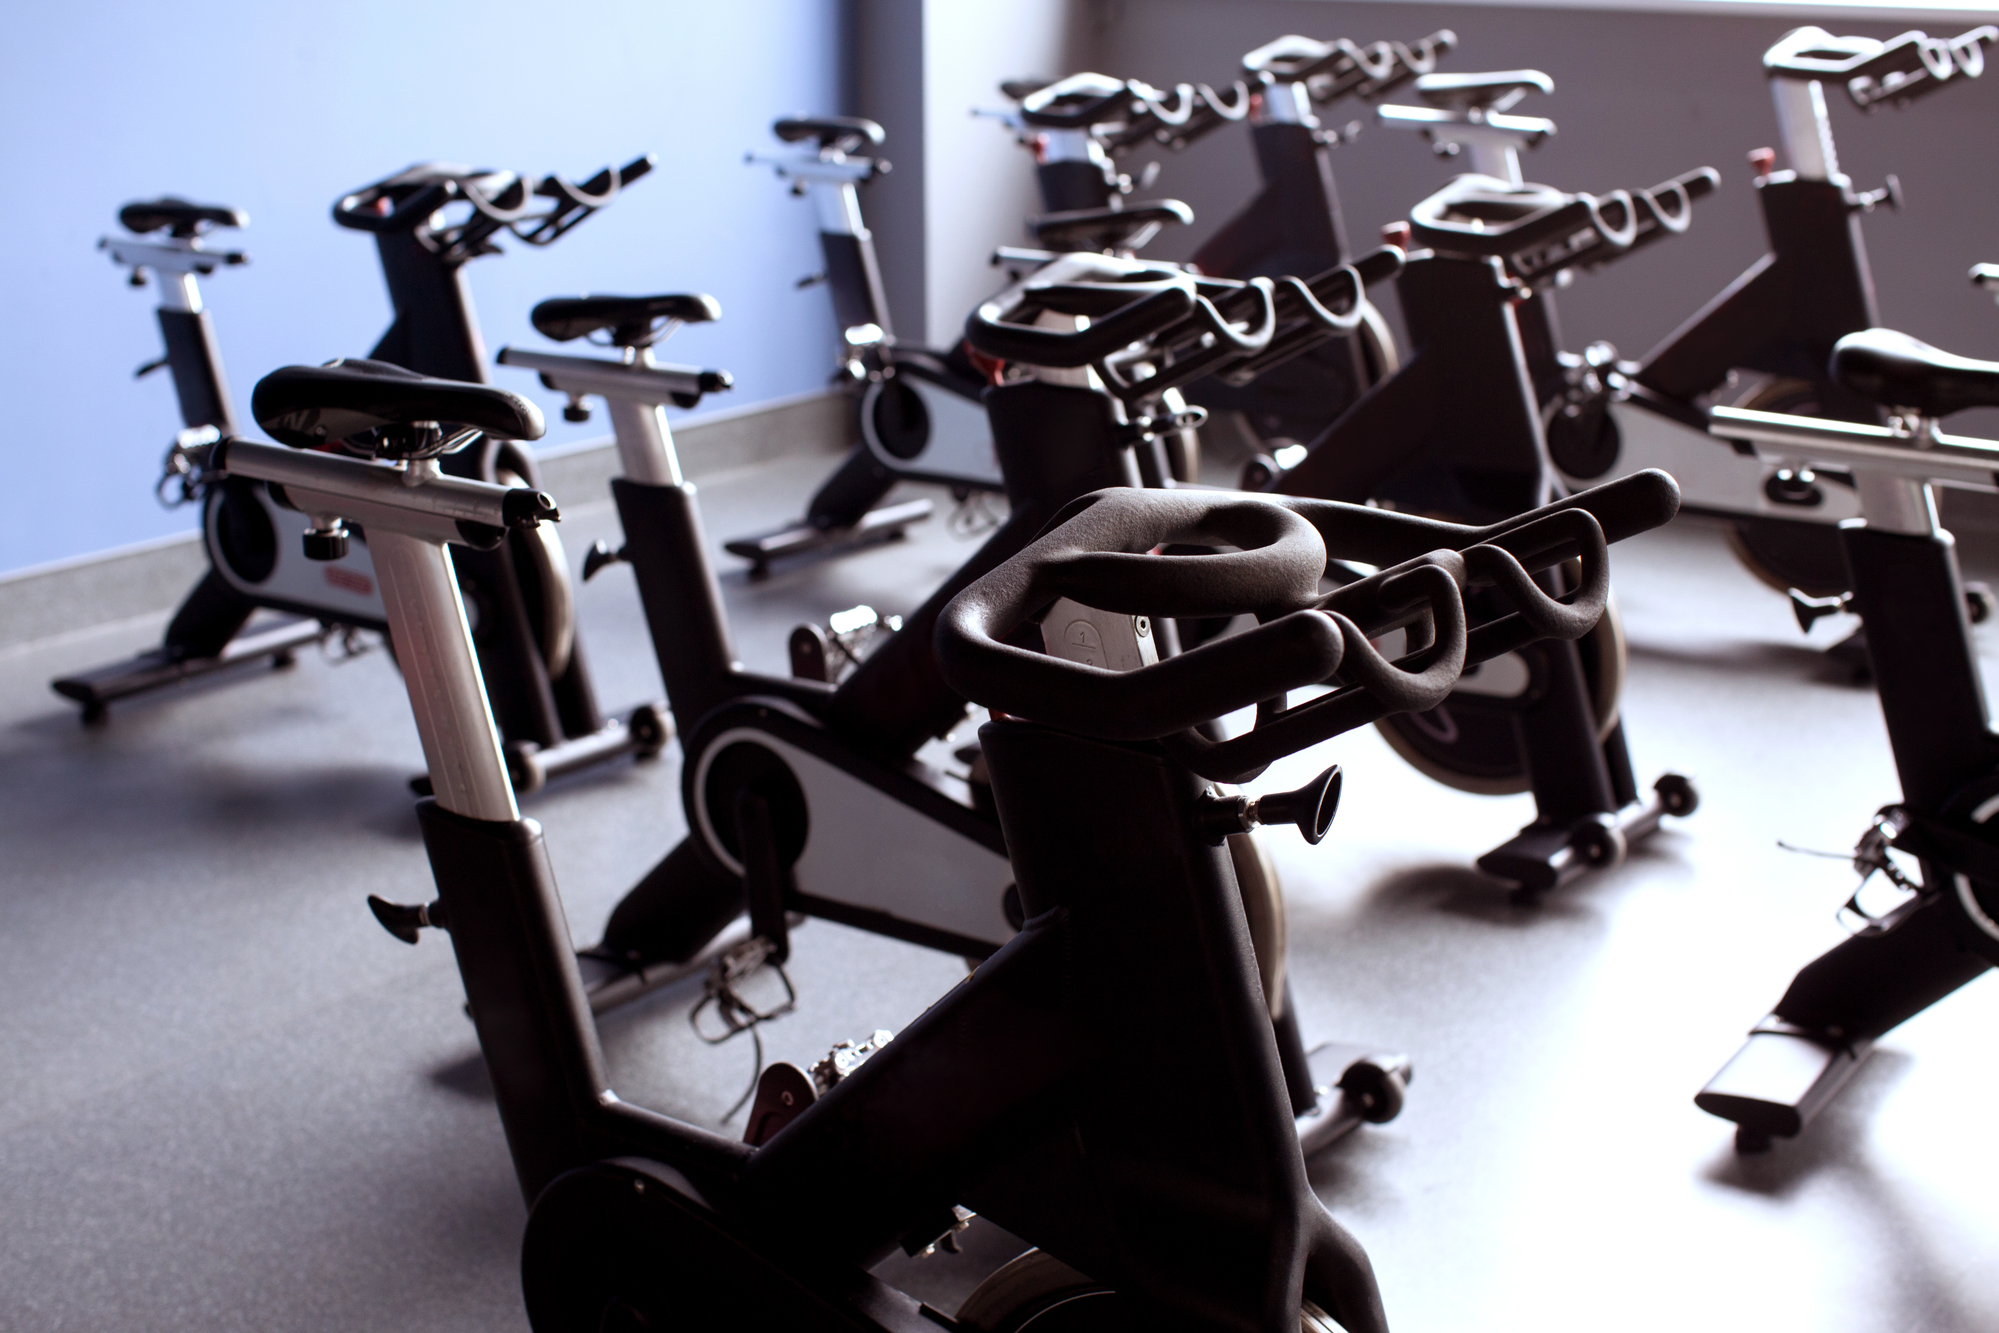 Exercise spin bikes at the gym